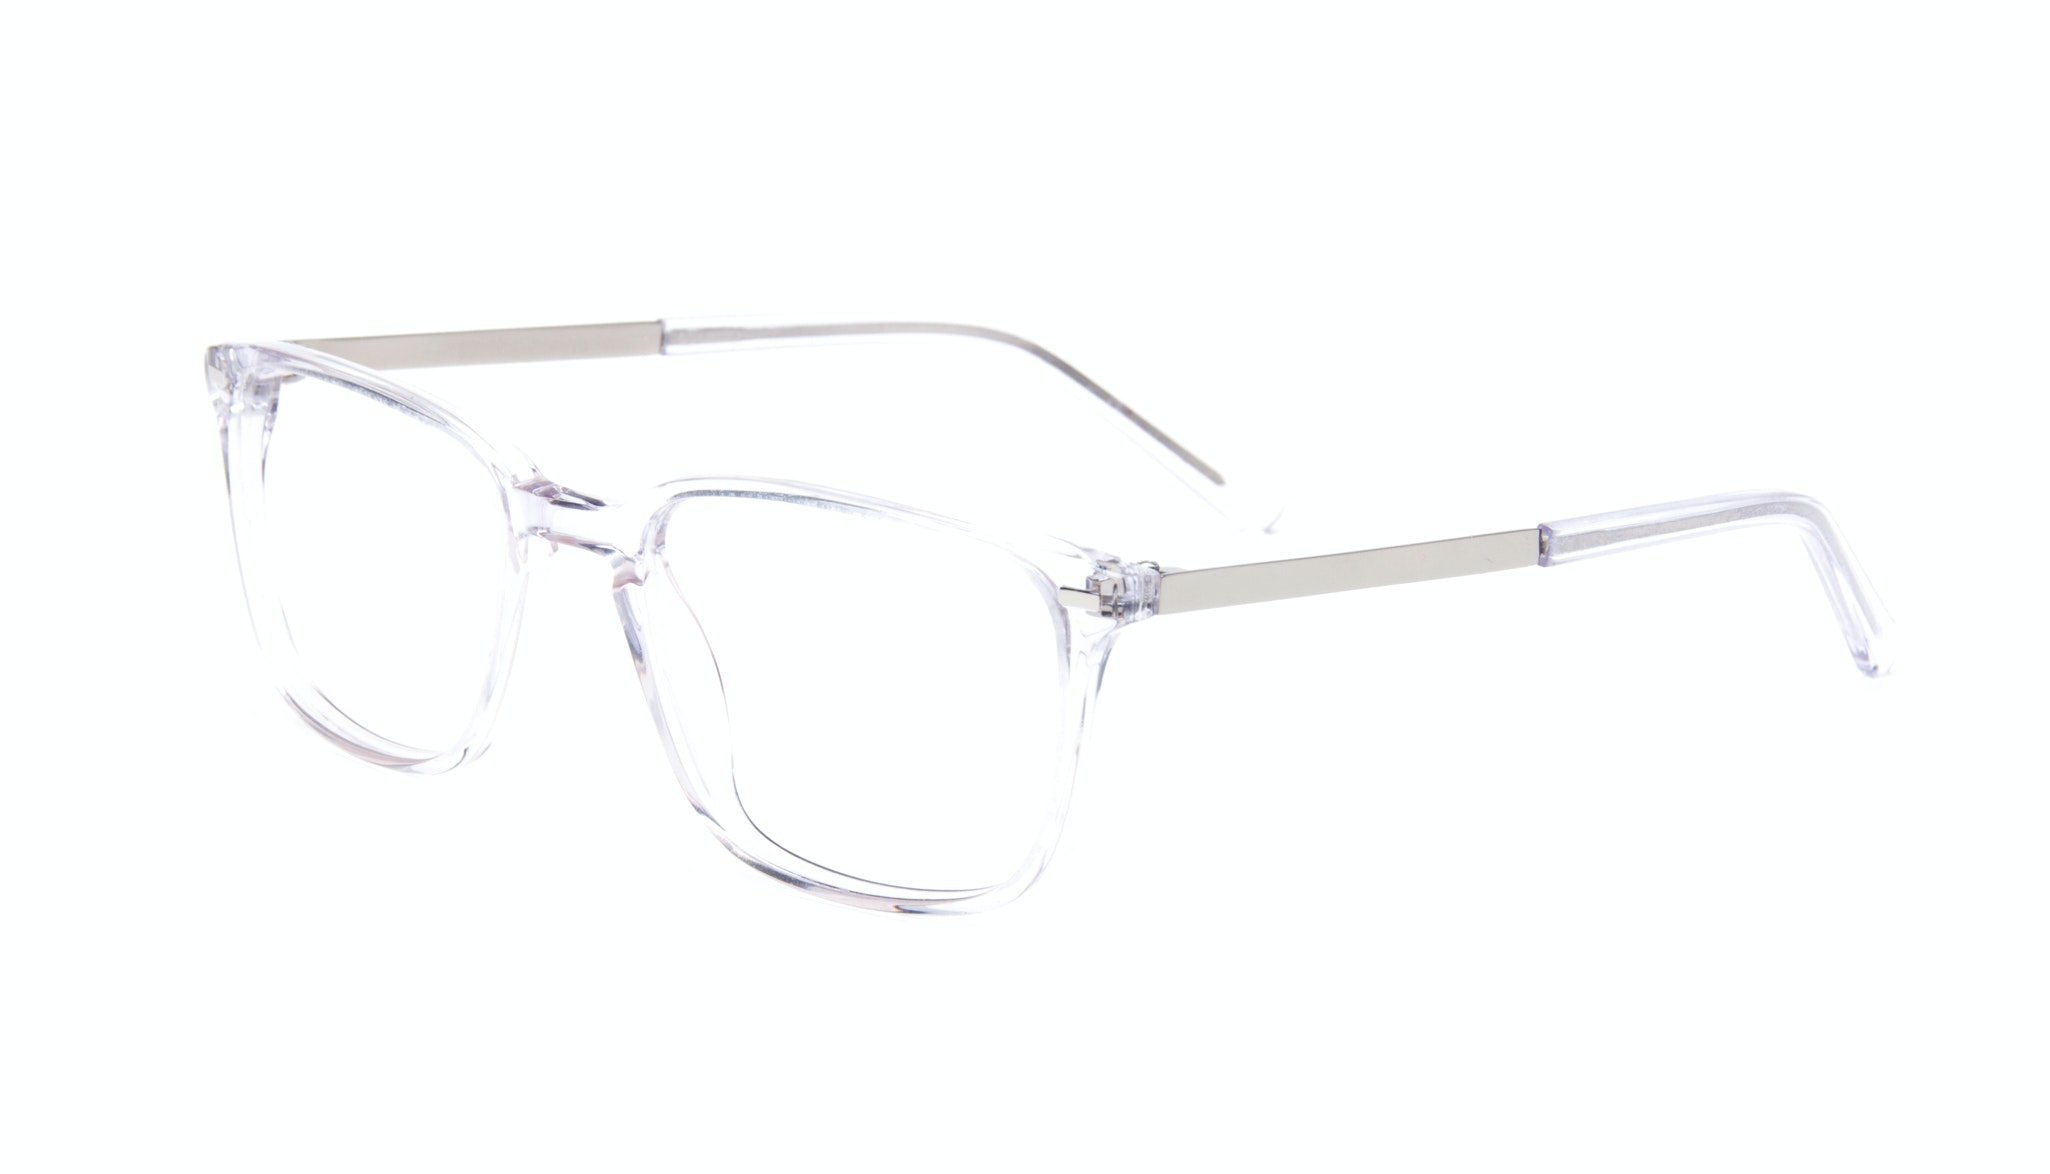 Affordable Fashion Glasses Rectangle Eyeglasses Men Sharp Diamond Tilt